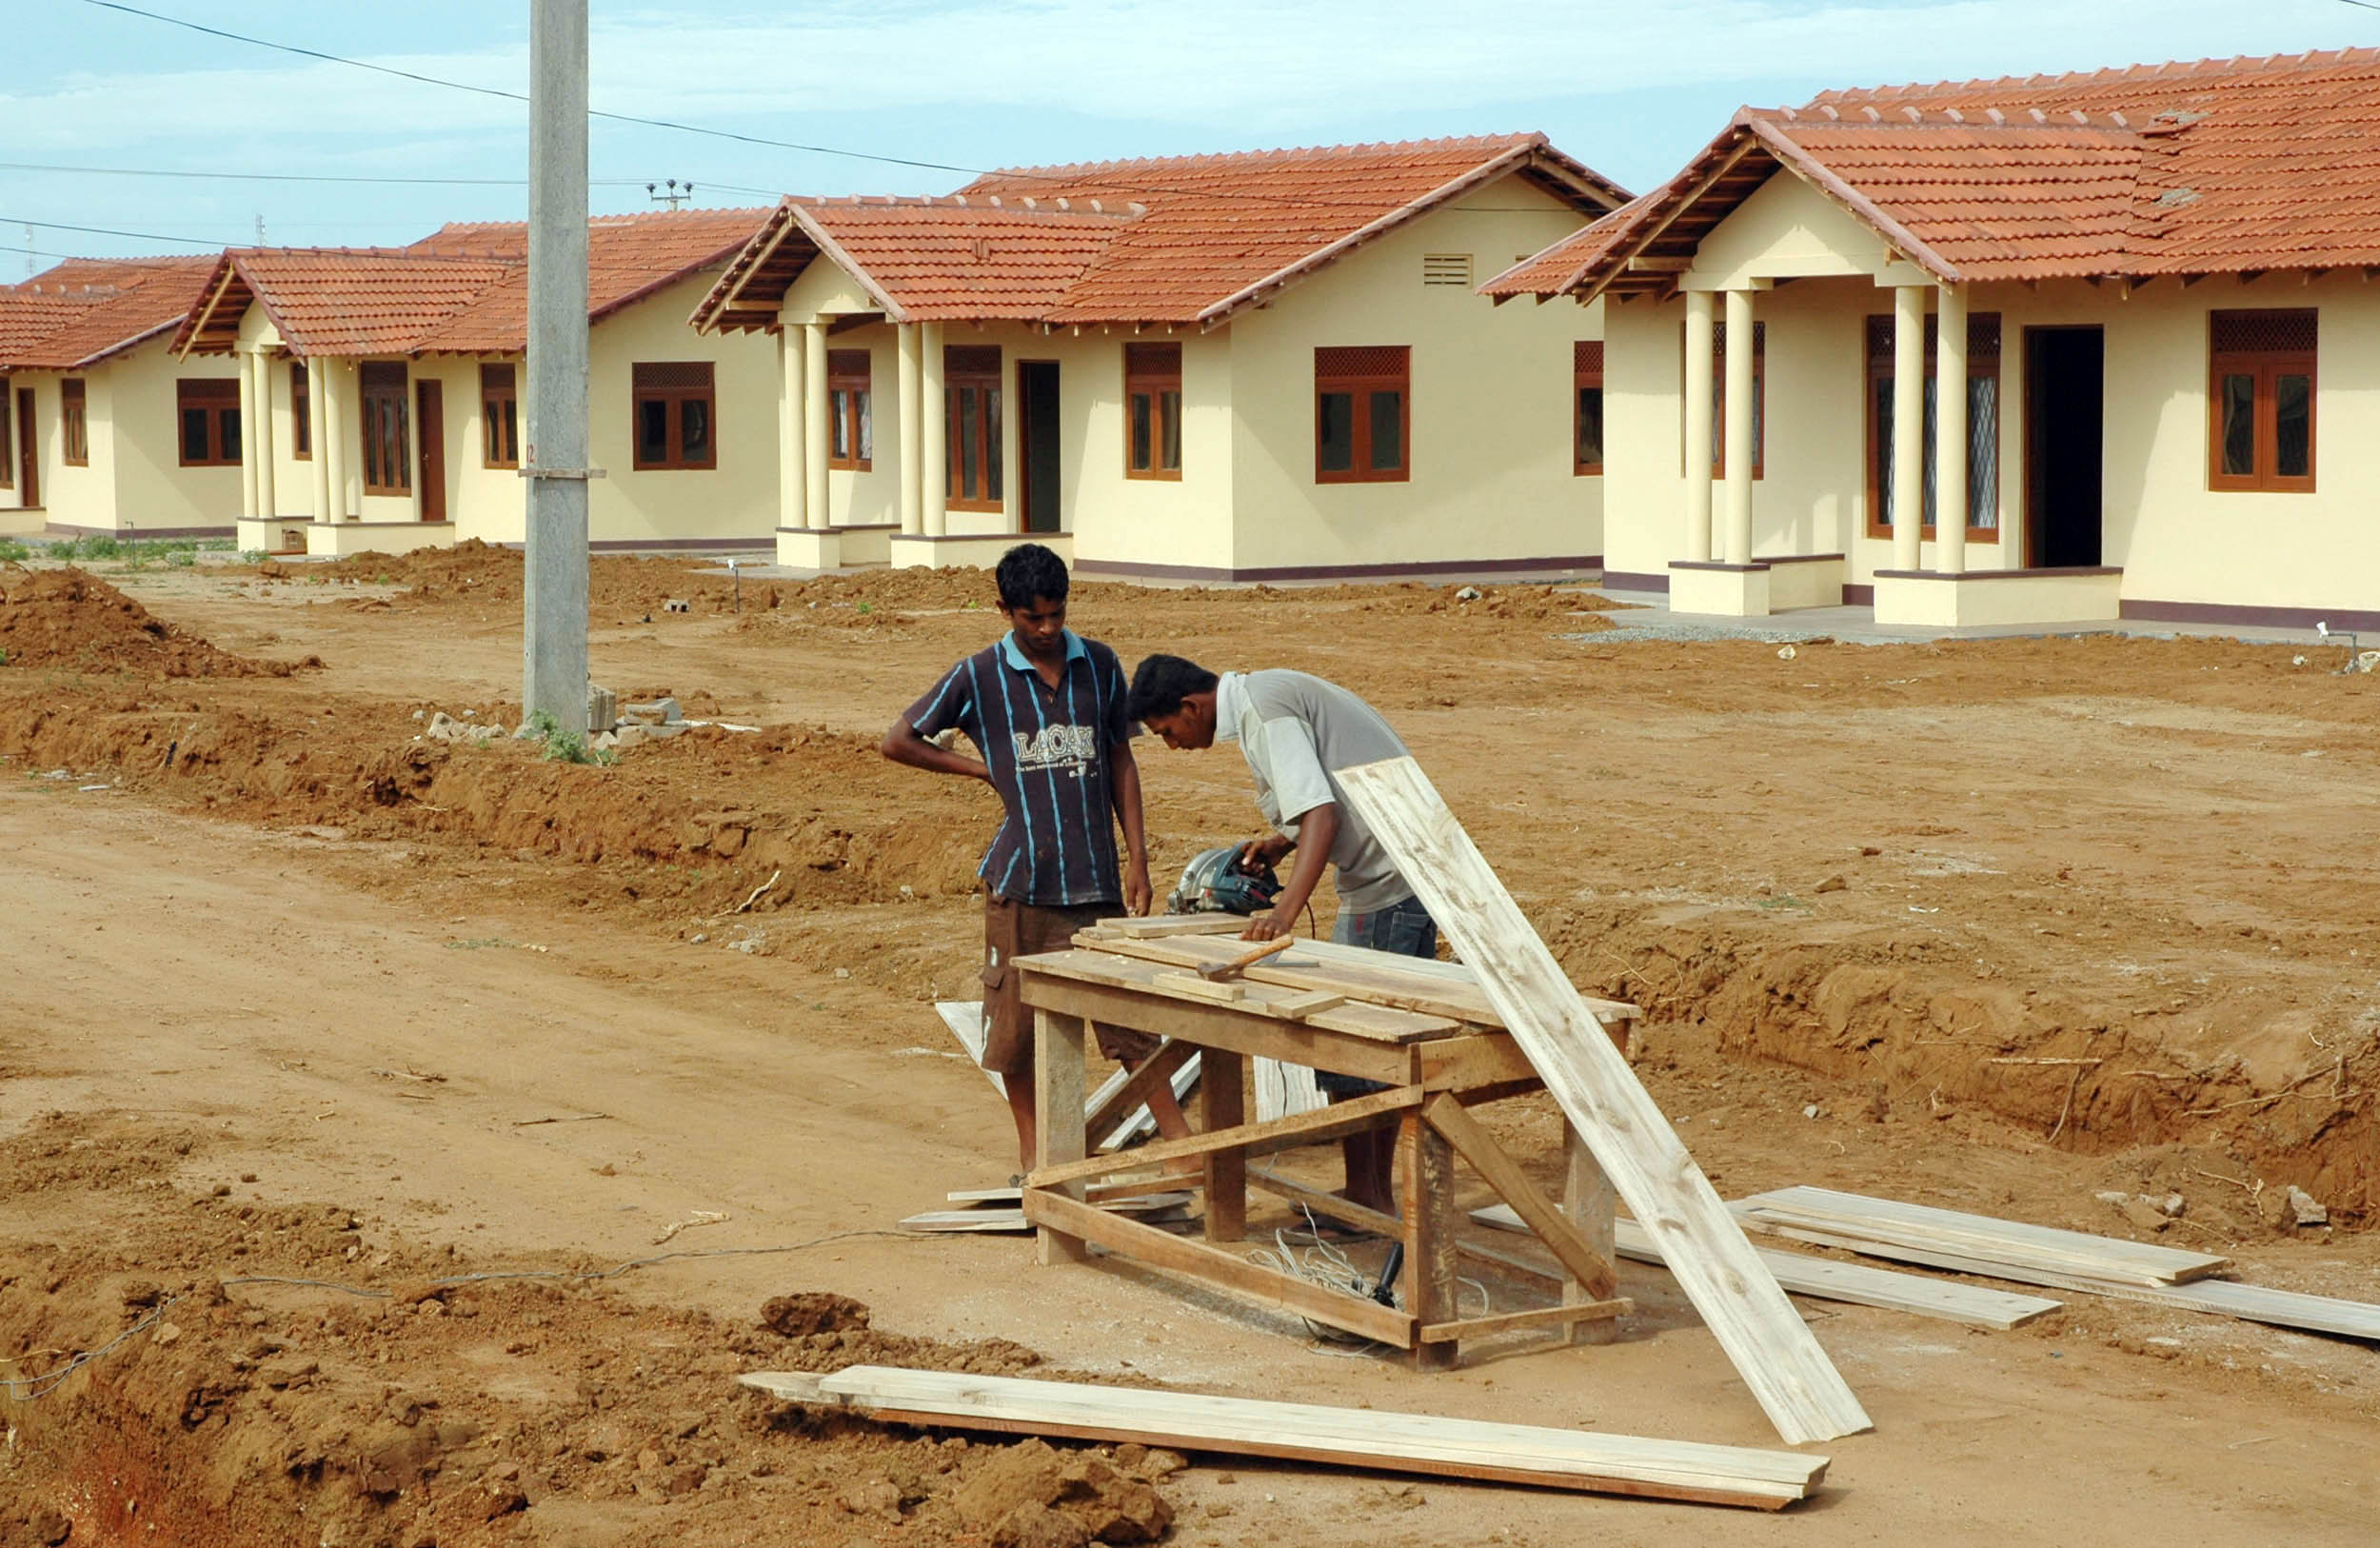 Siribopura in Hambantota District: a 240 hectare township of more than 1,600 houses for those affected by the tsunami. In the southern districts of Sri Lanka, the building of permanent housing for tsunami victims has proceeded far faster than that for tho